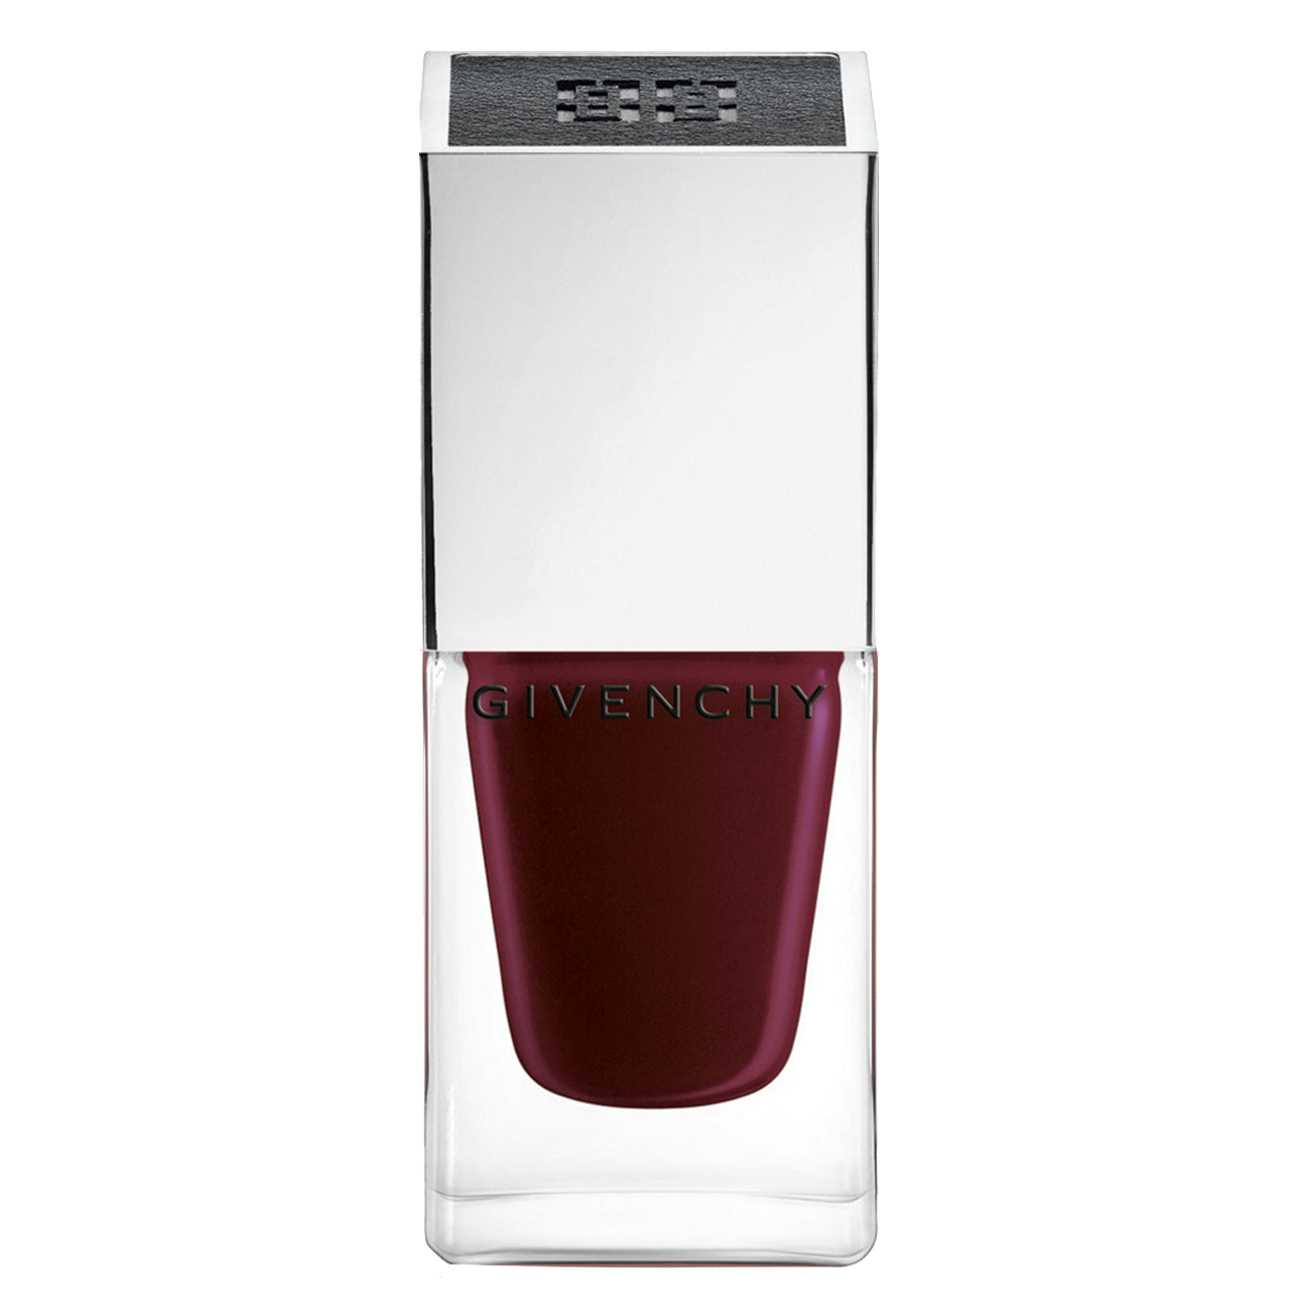 Le Vernis 10 Ml Pourpre Defile 8 Givenchy imagine 2021 bestvalue.eu